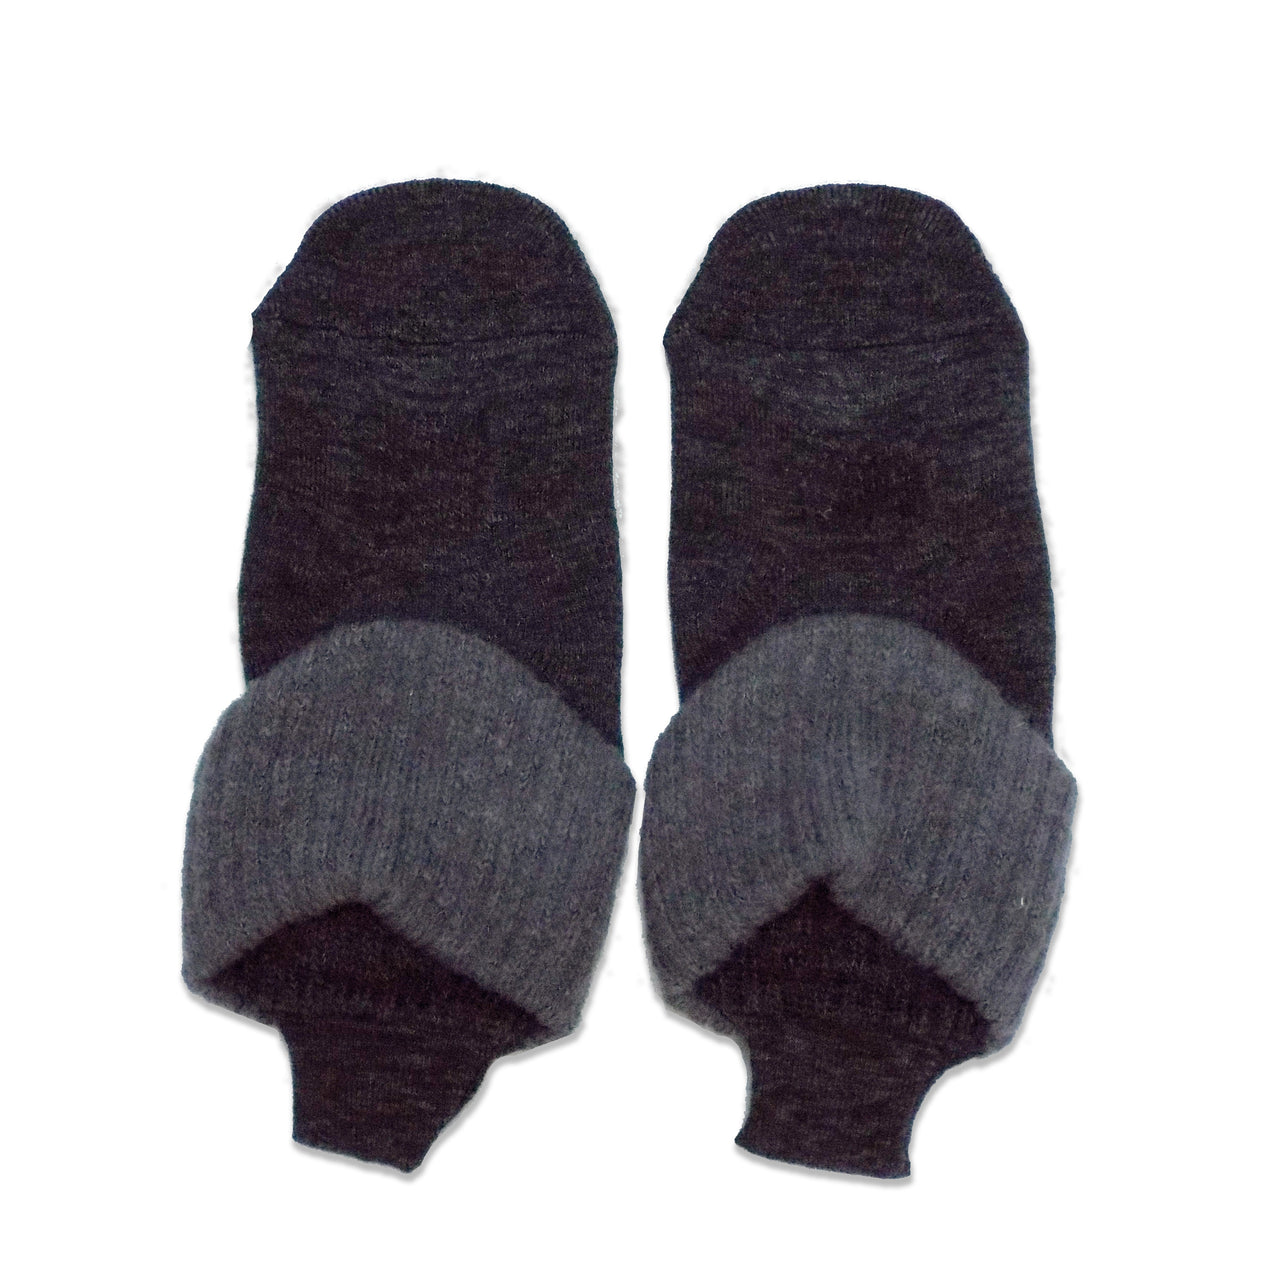 Loop Socks with Grips | Medium Size | Charcoal - CHERRYSTONE